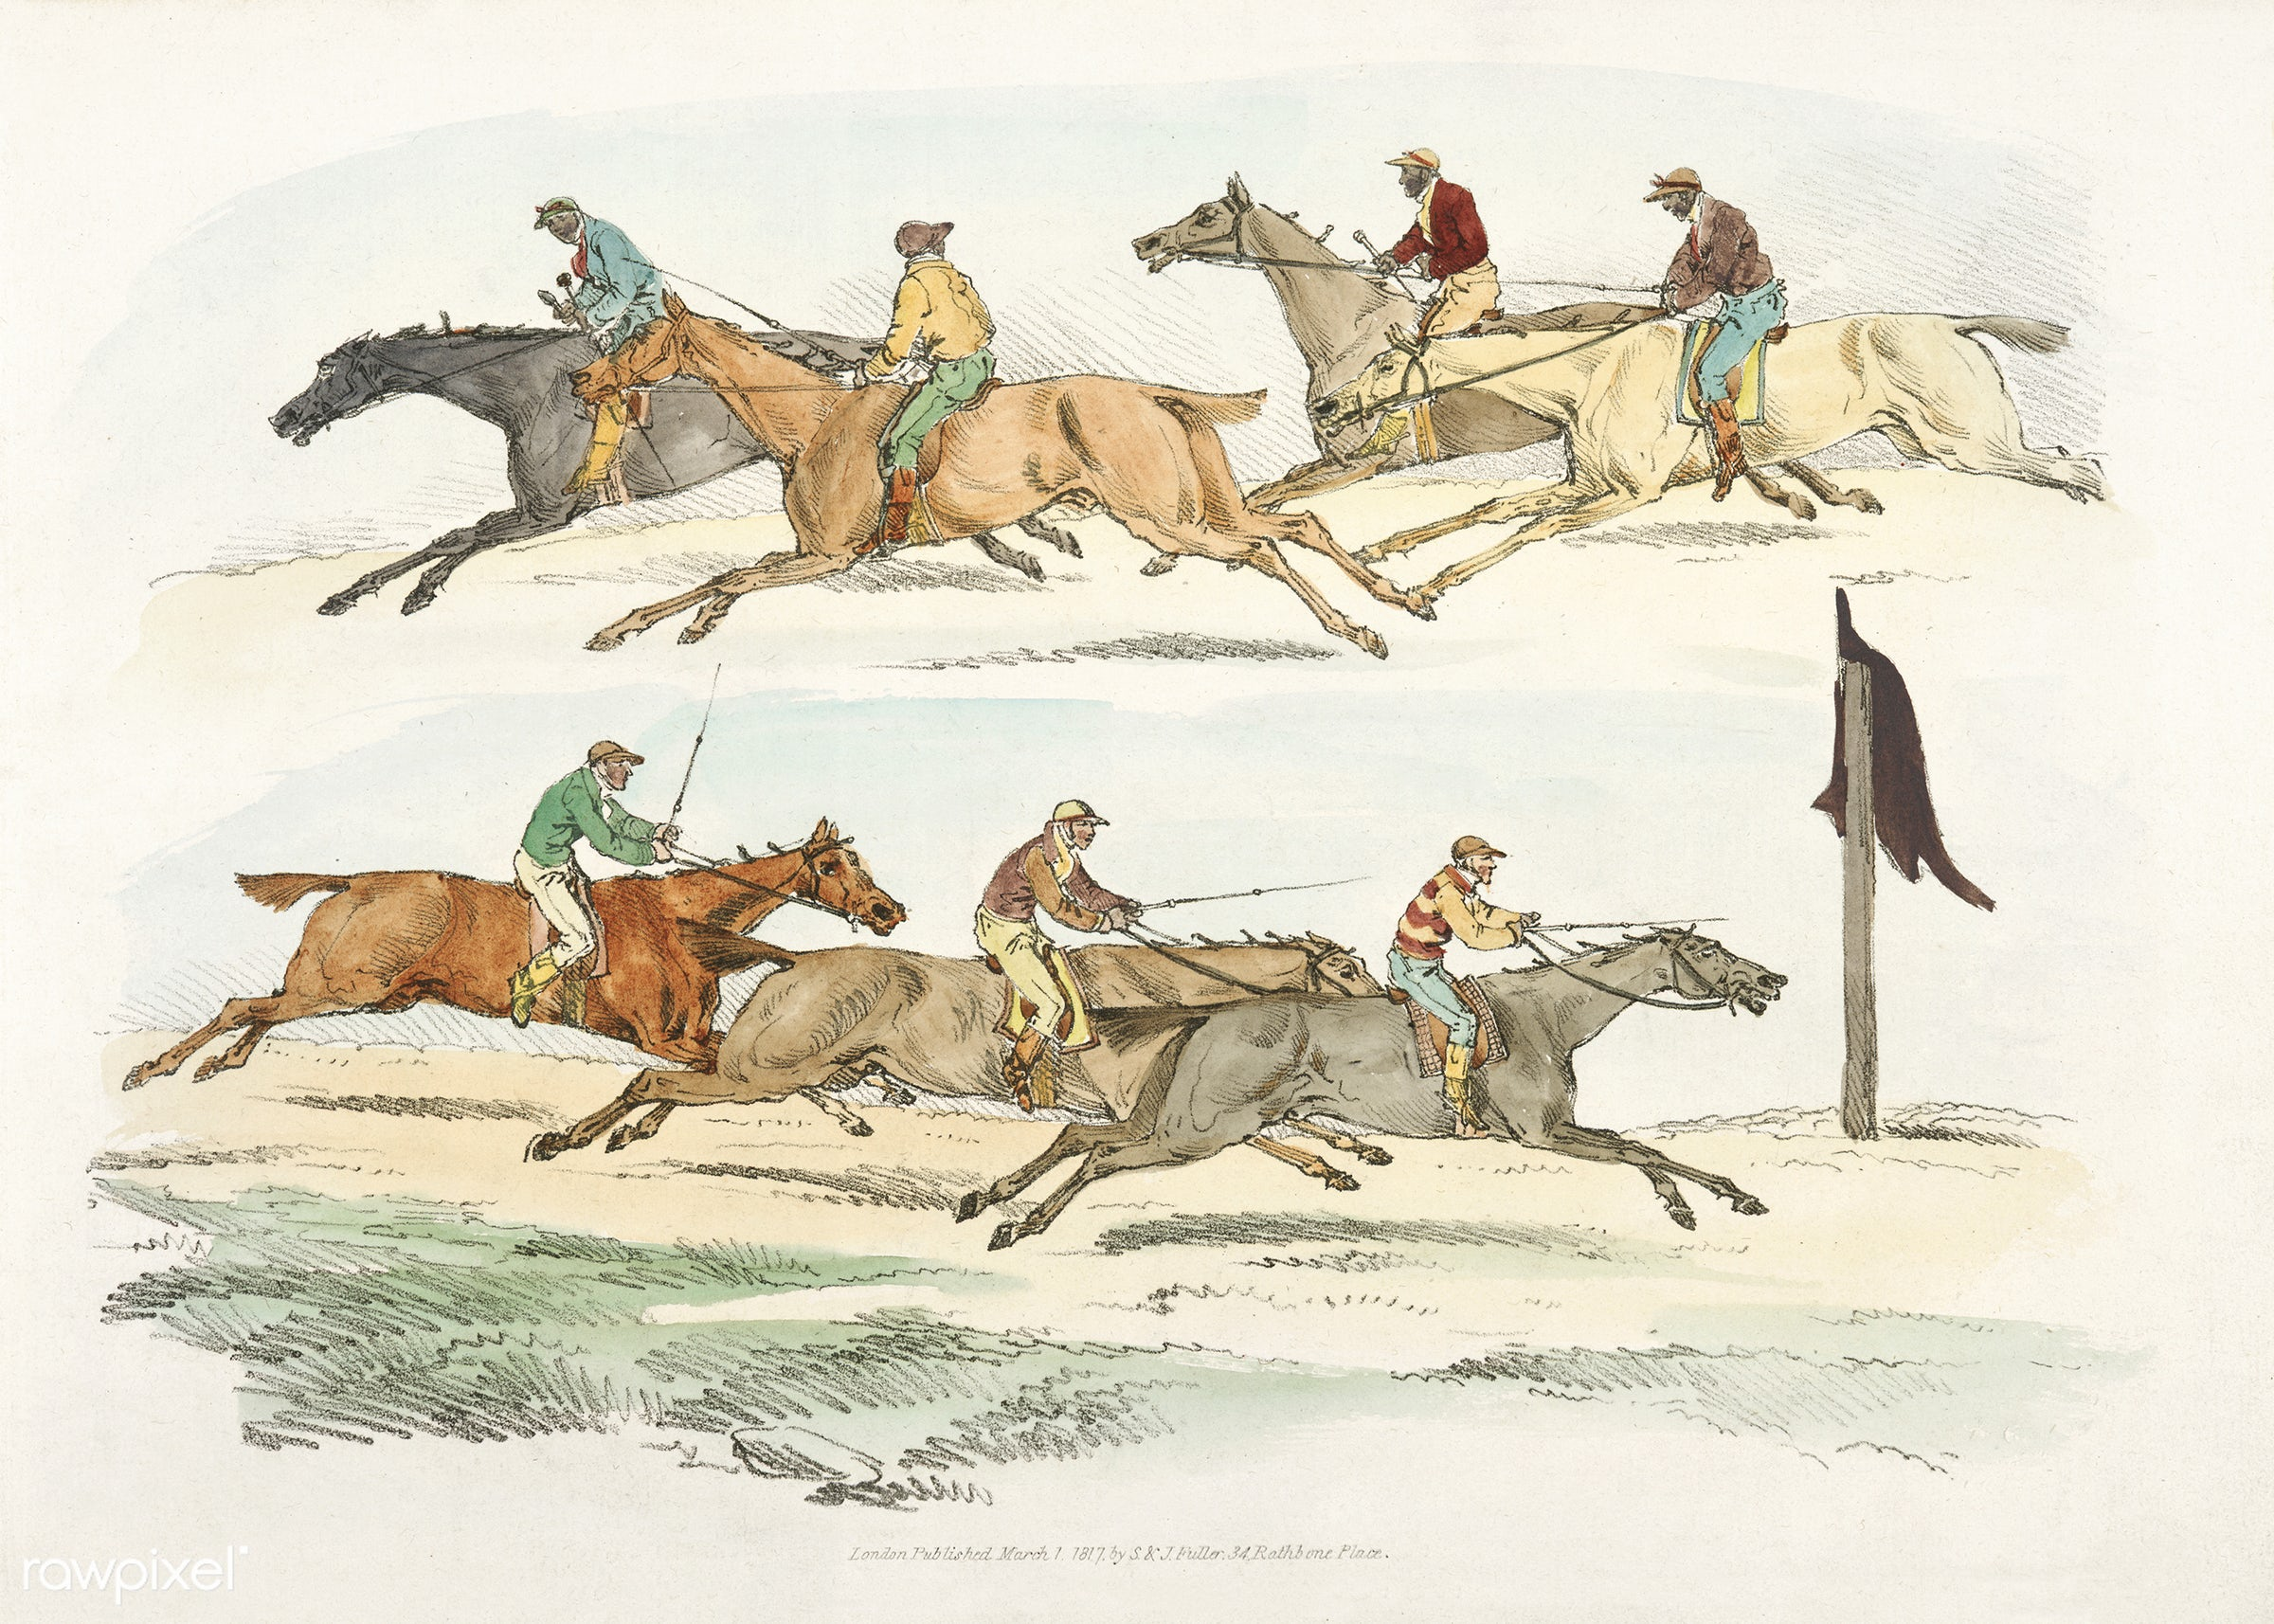 Illustration of horse race from Sporting Sketches (1817-1818) by Henry Alken (1784-1851). - animal, antique, cc0, creative...